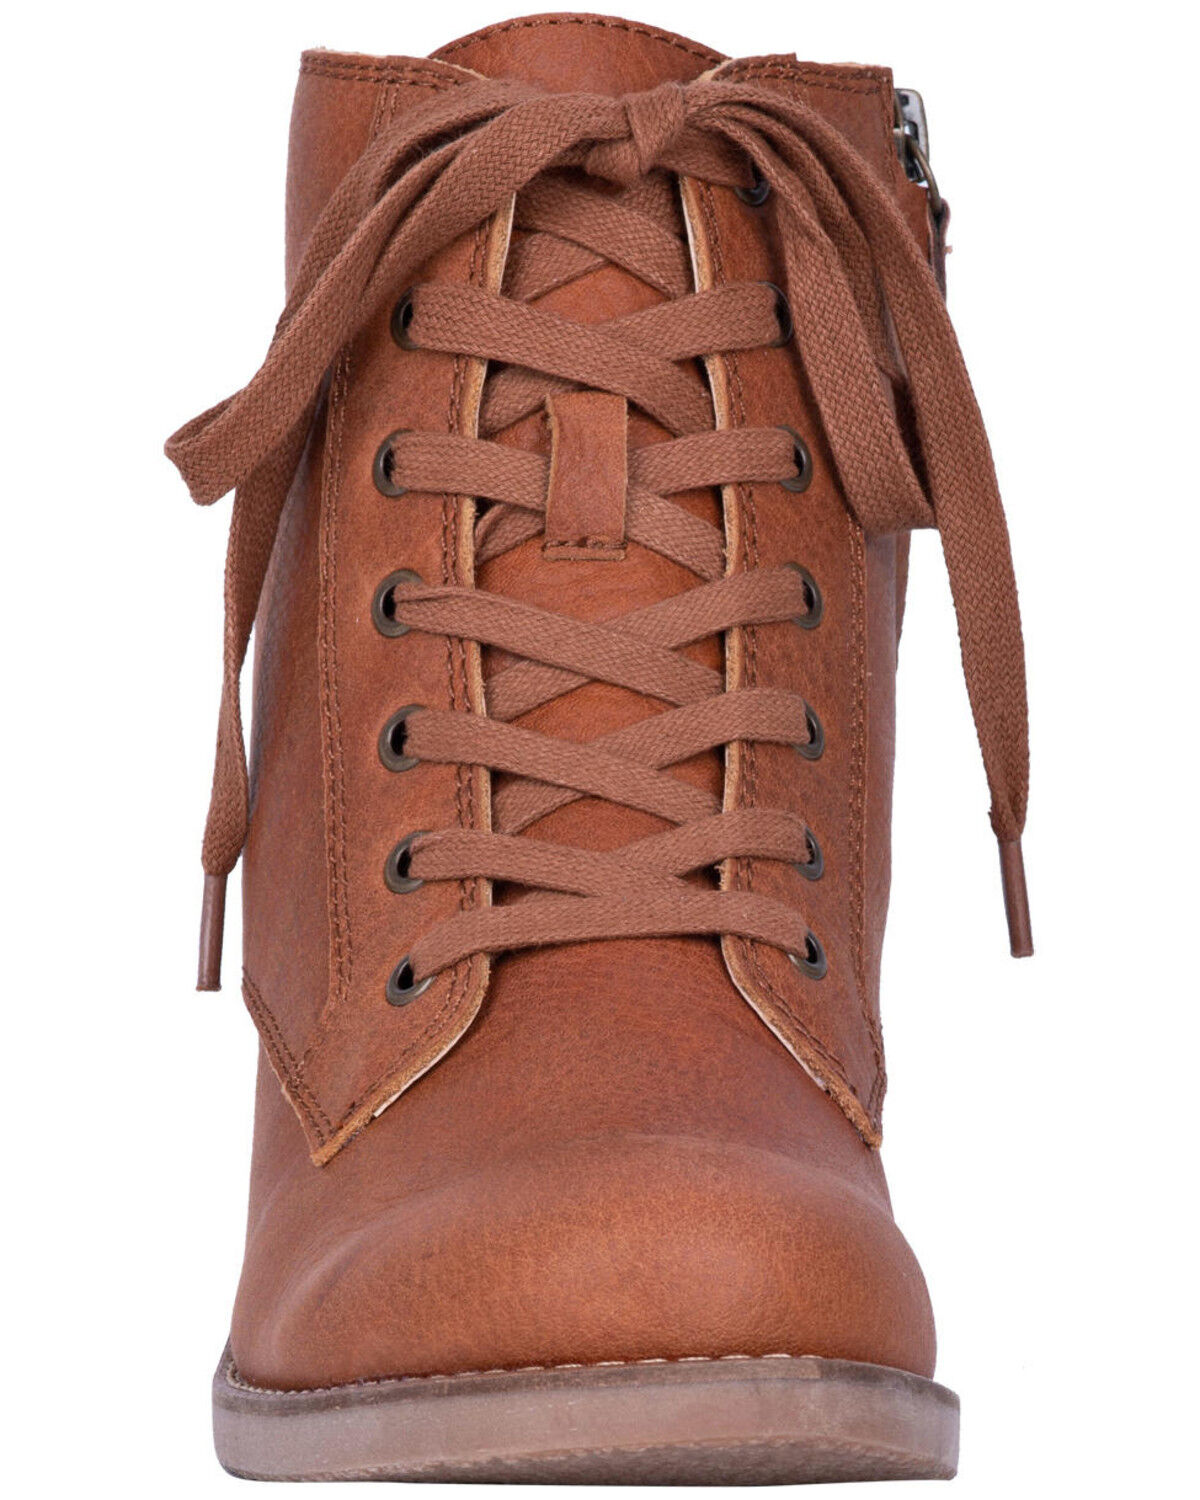 Prairie Girl Lace-Up Boots - Round Toe